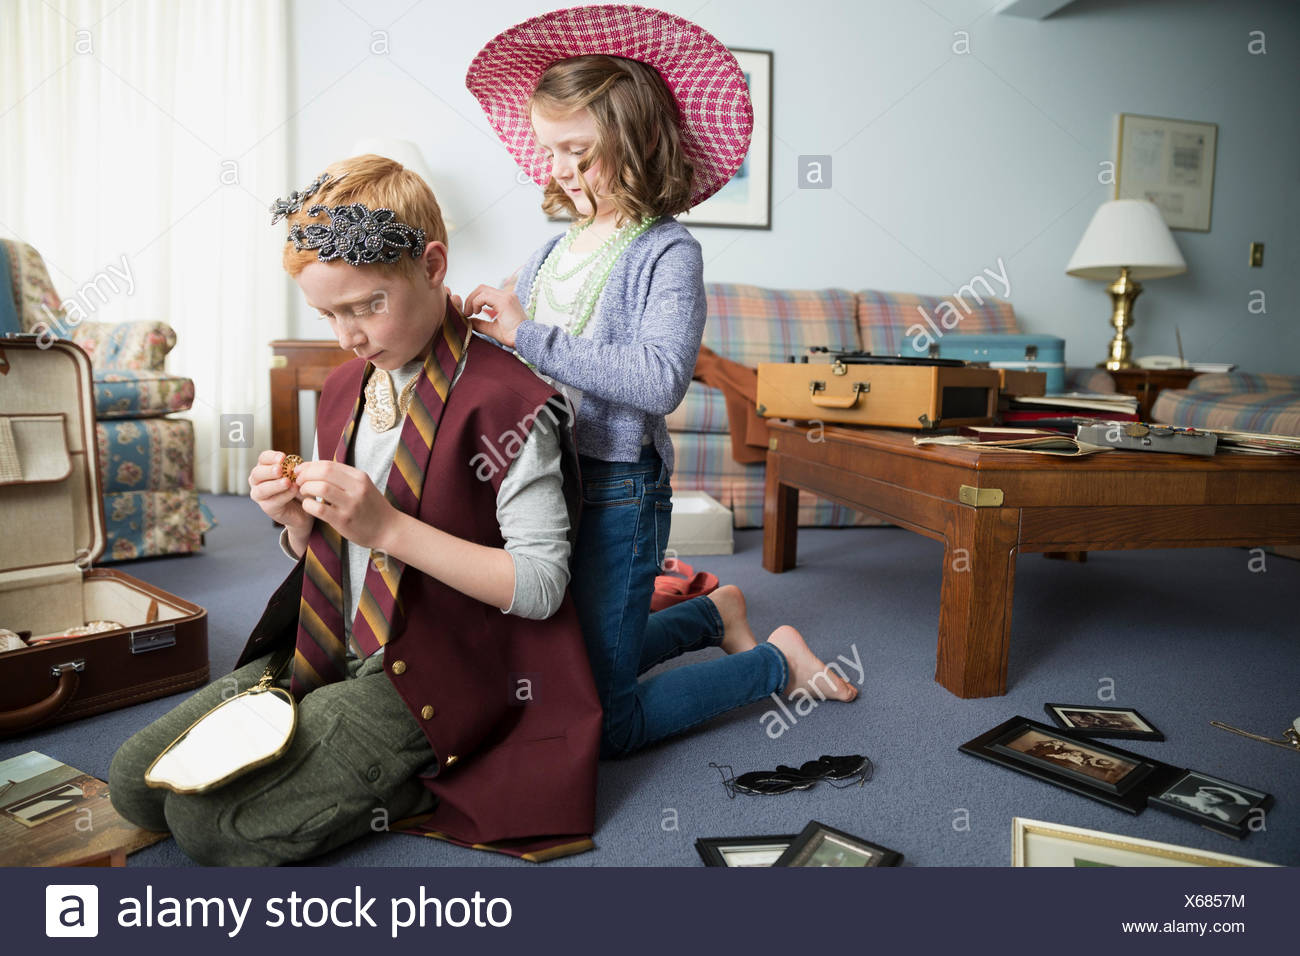 Brother and sister trying on old-fashioned clothing - Stock Image